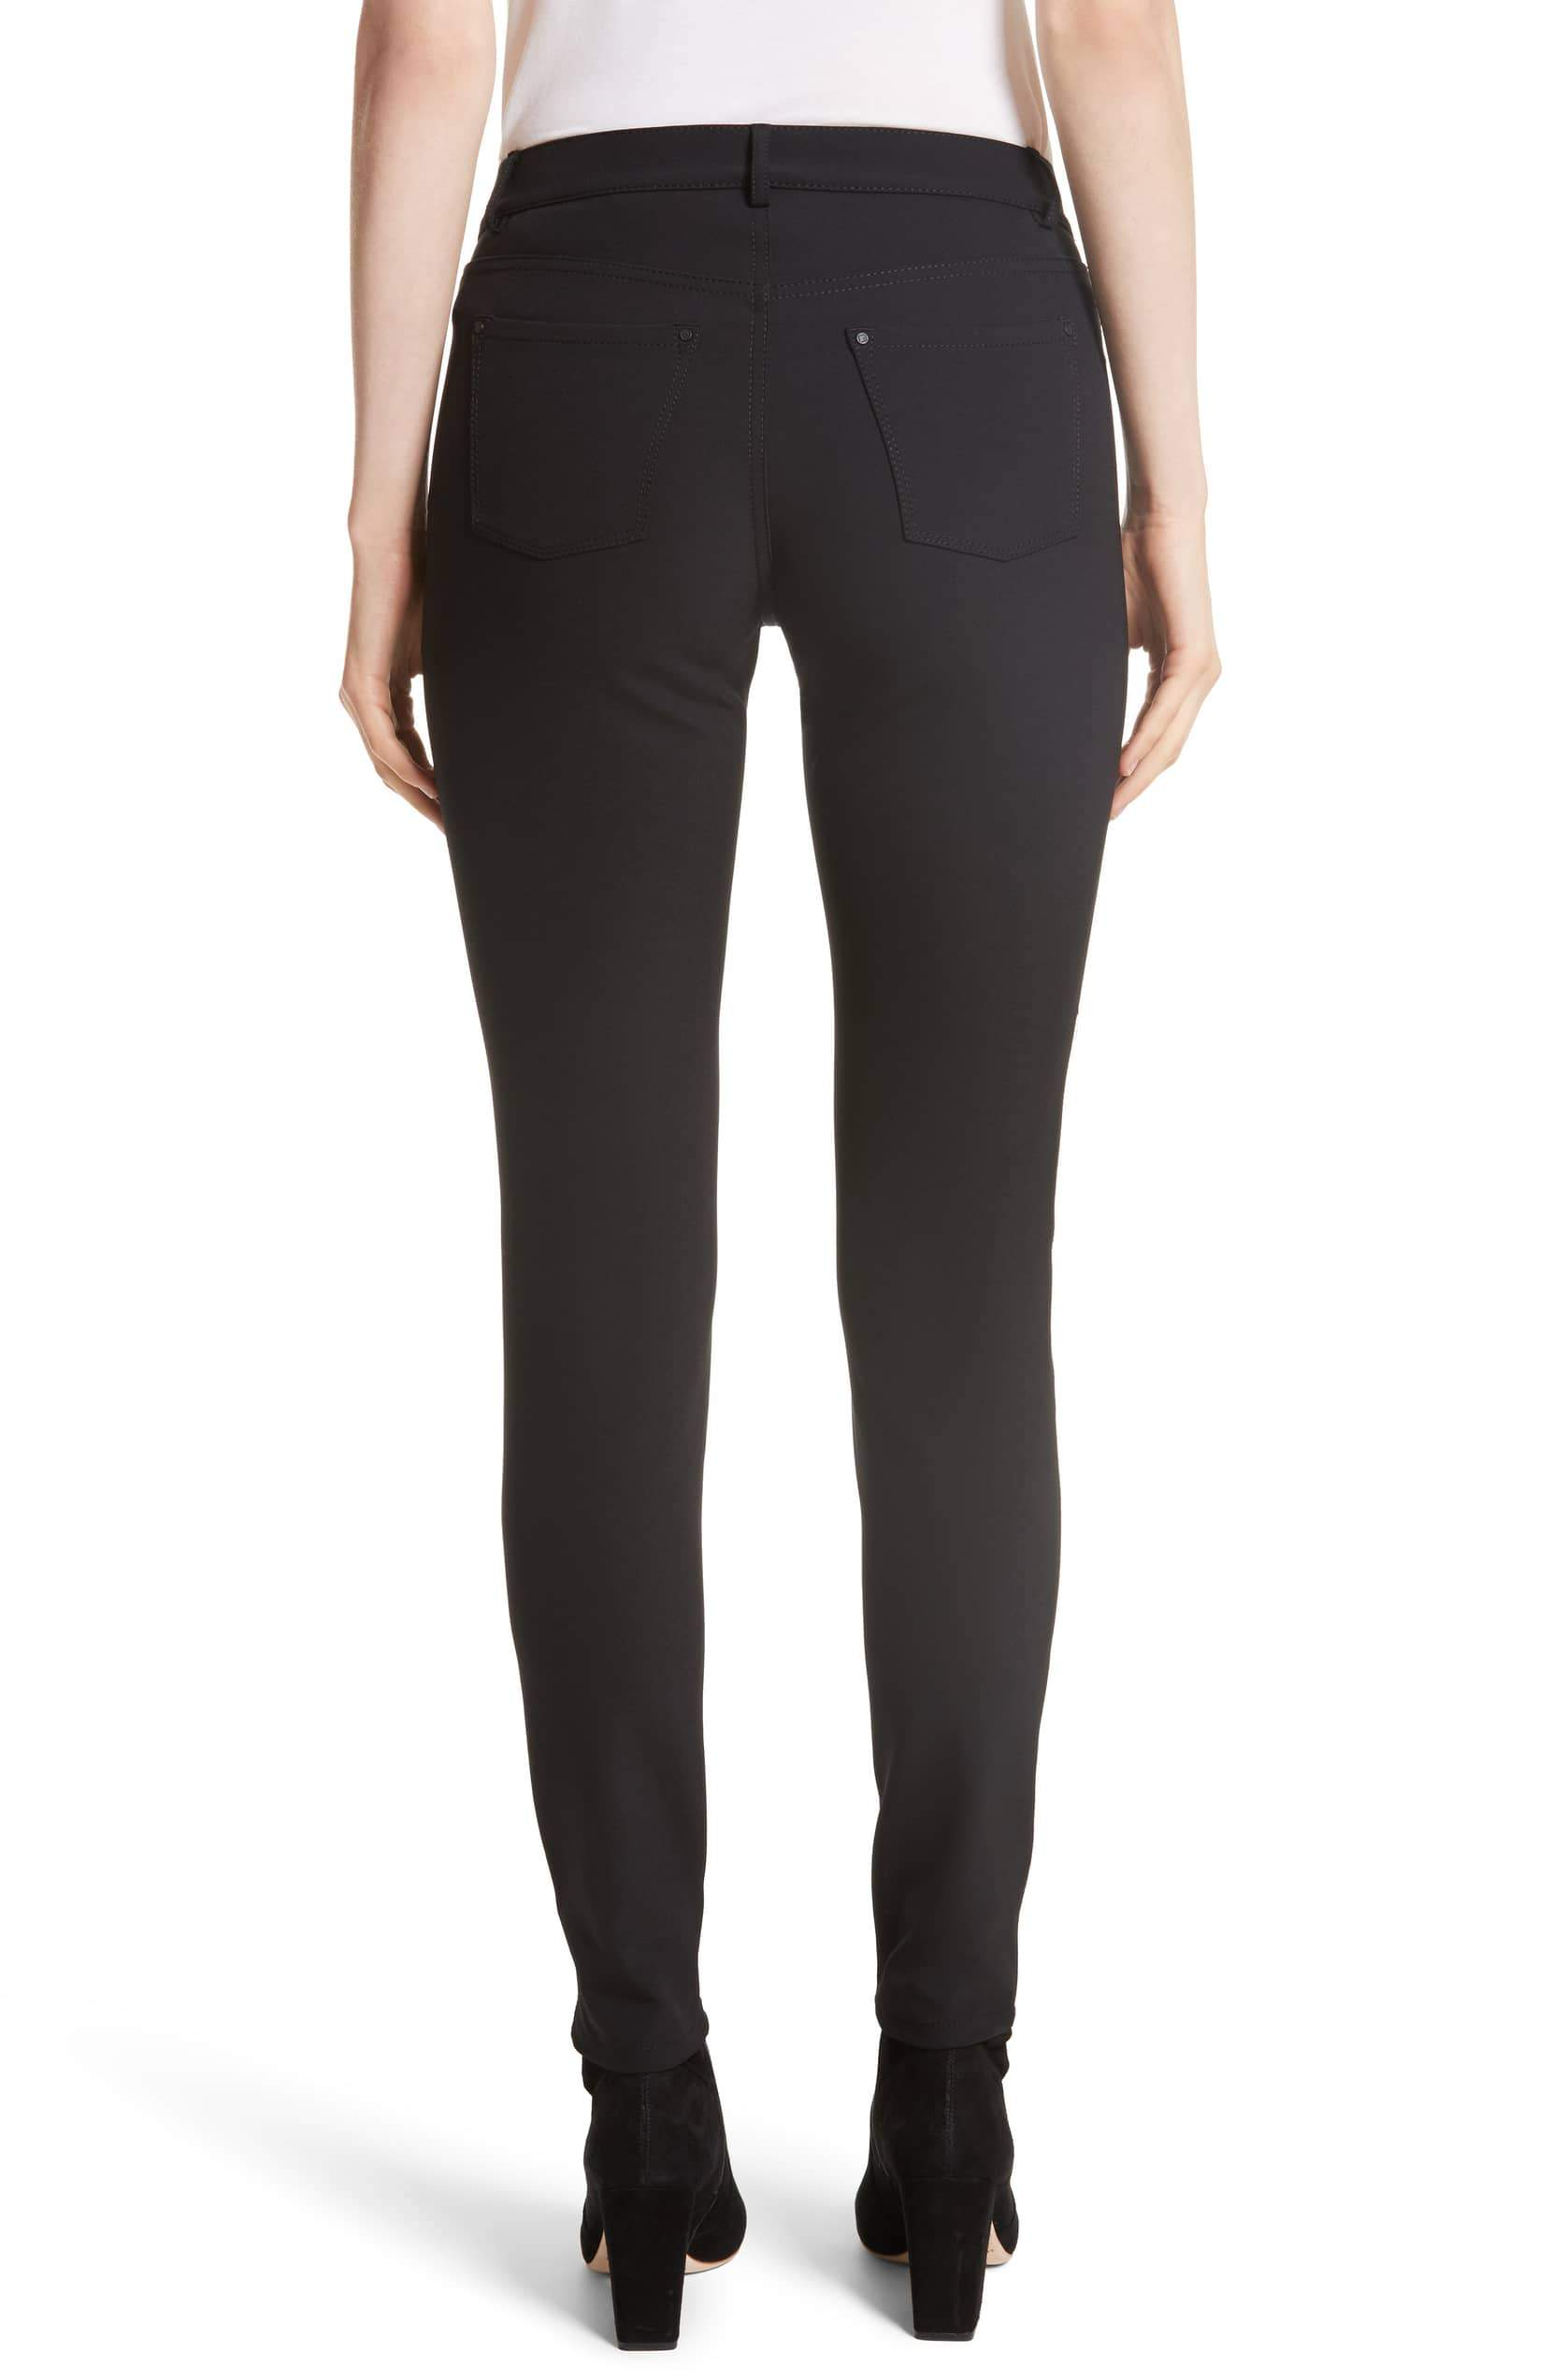 Lafayette 148 Mercer Stretch Skinny Pants